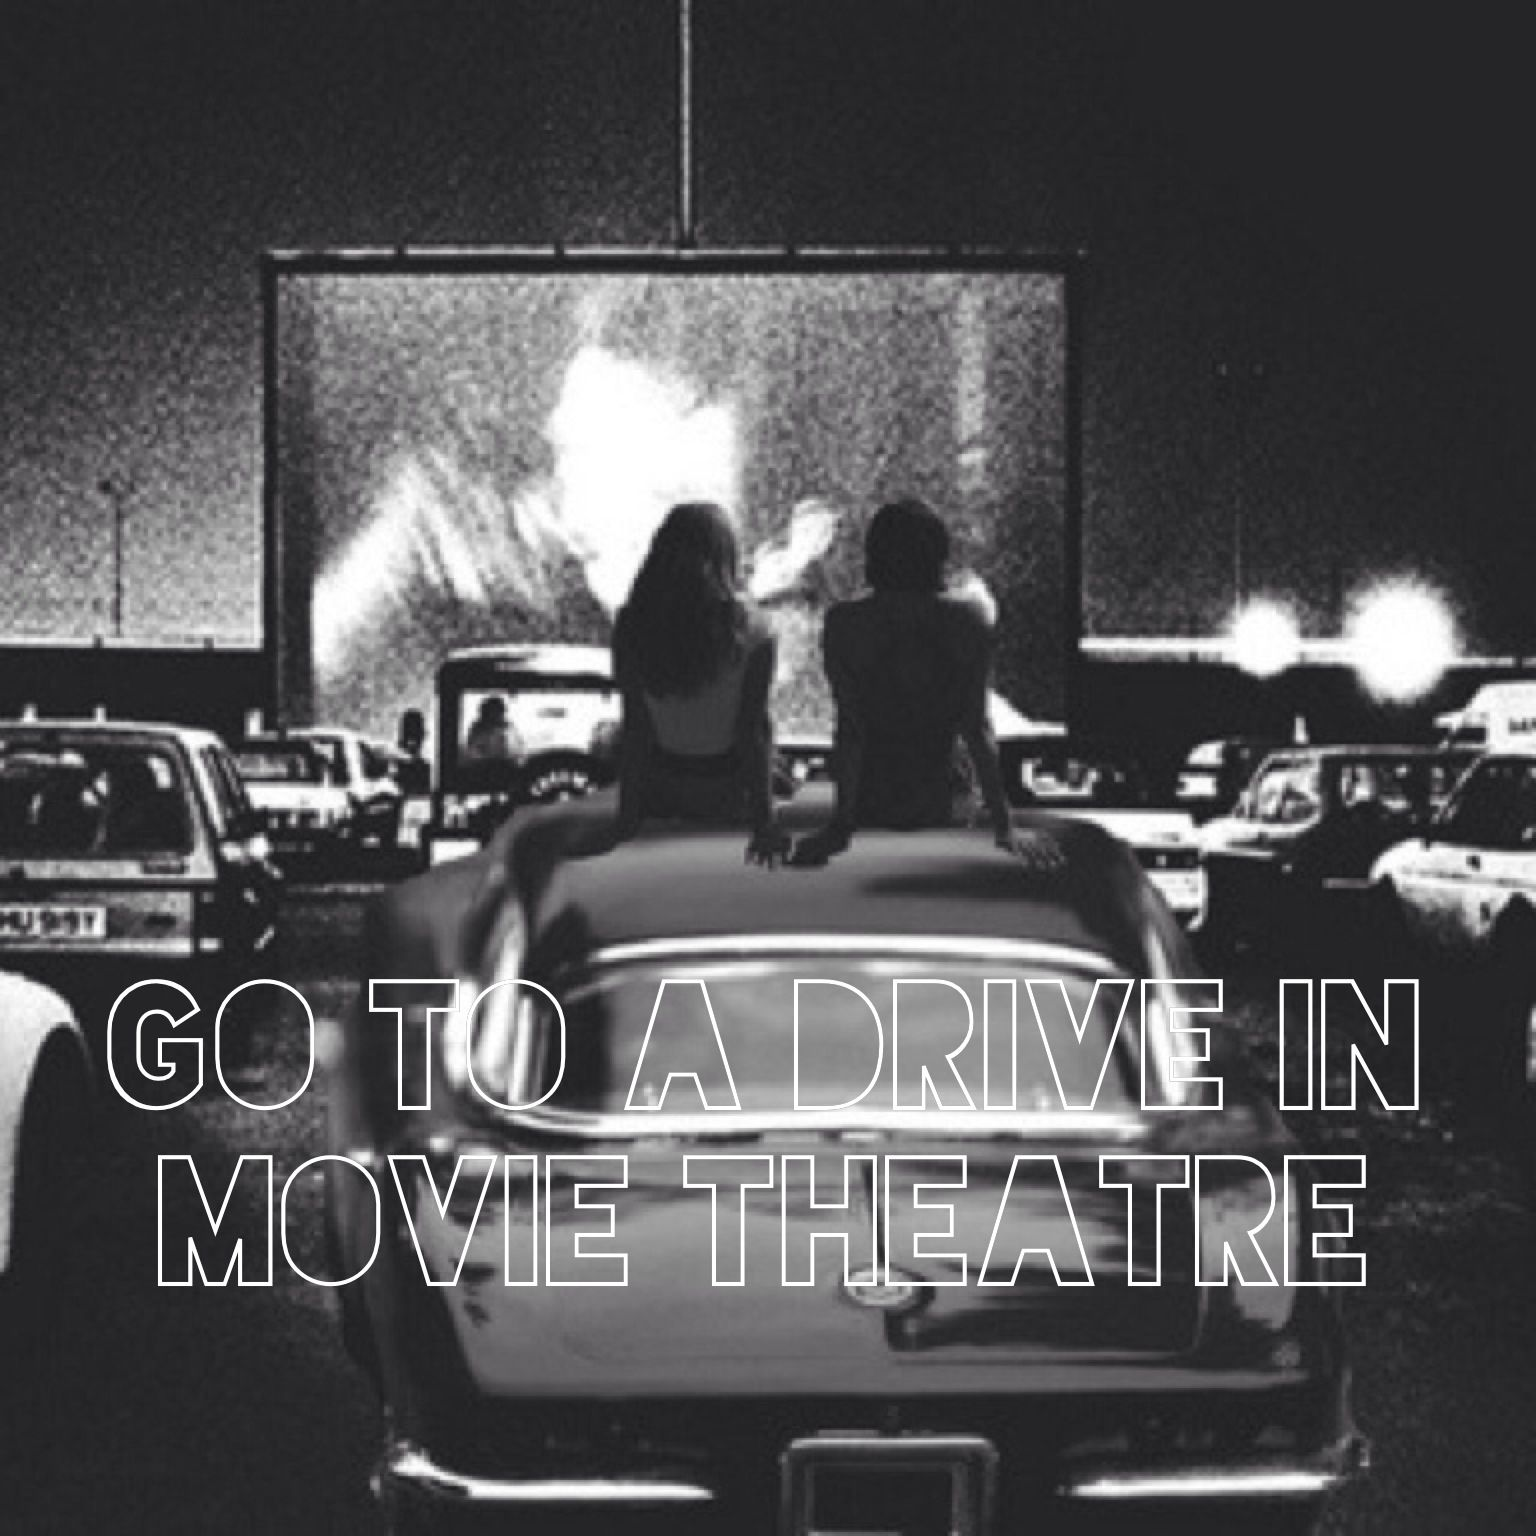 Go to a drive in movie theatreDone!! Drive in movie